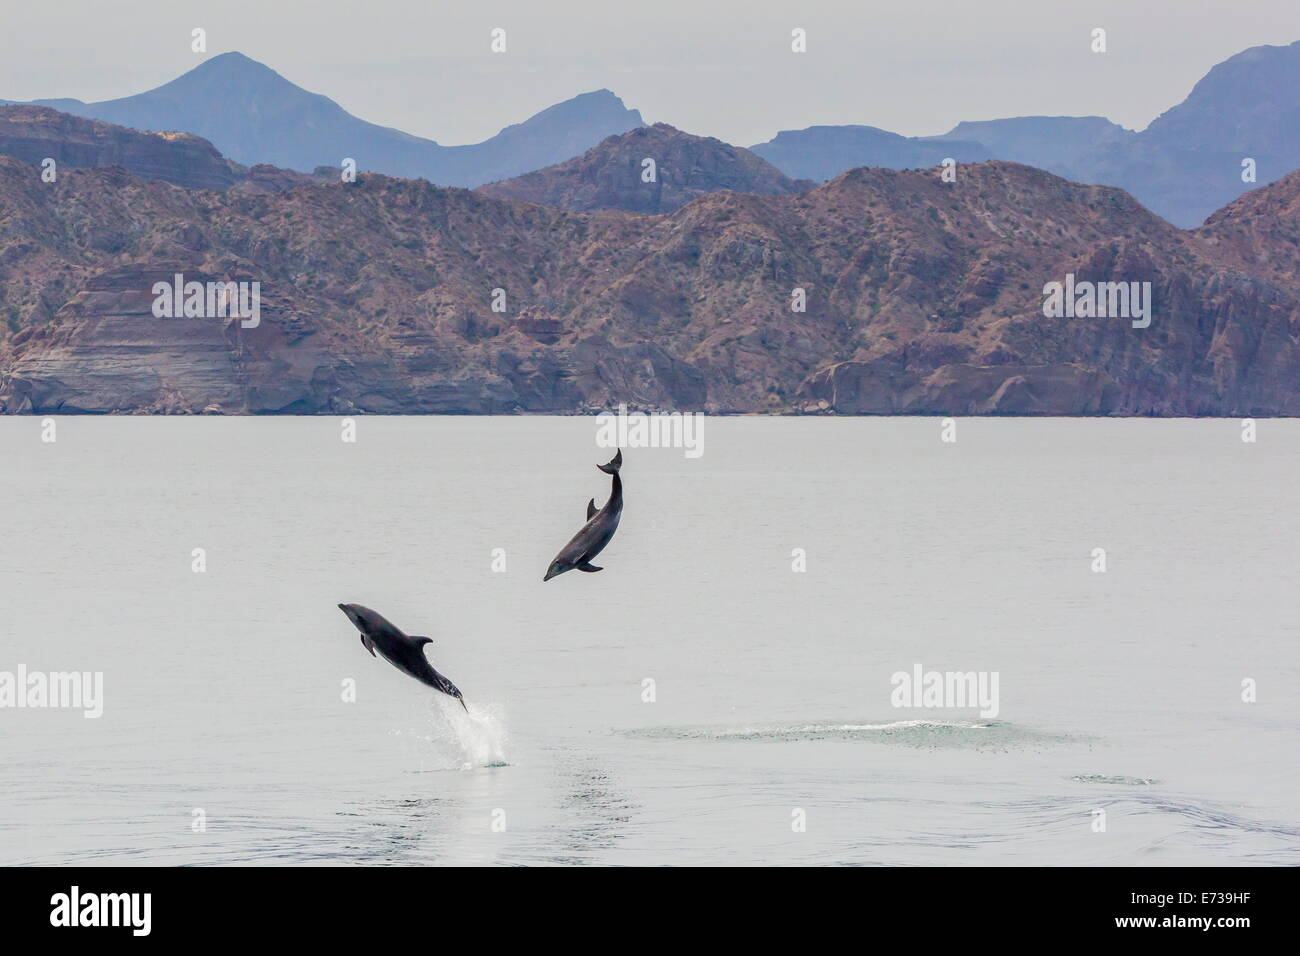 Adult bottlenose dolphins (Tursiops truncatus) leaping in the waters near Isla Danzante, Baja California Sur, Mexico Stock Photo